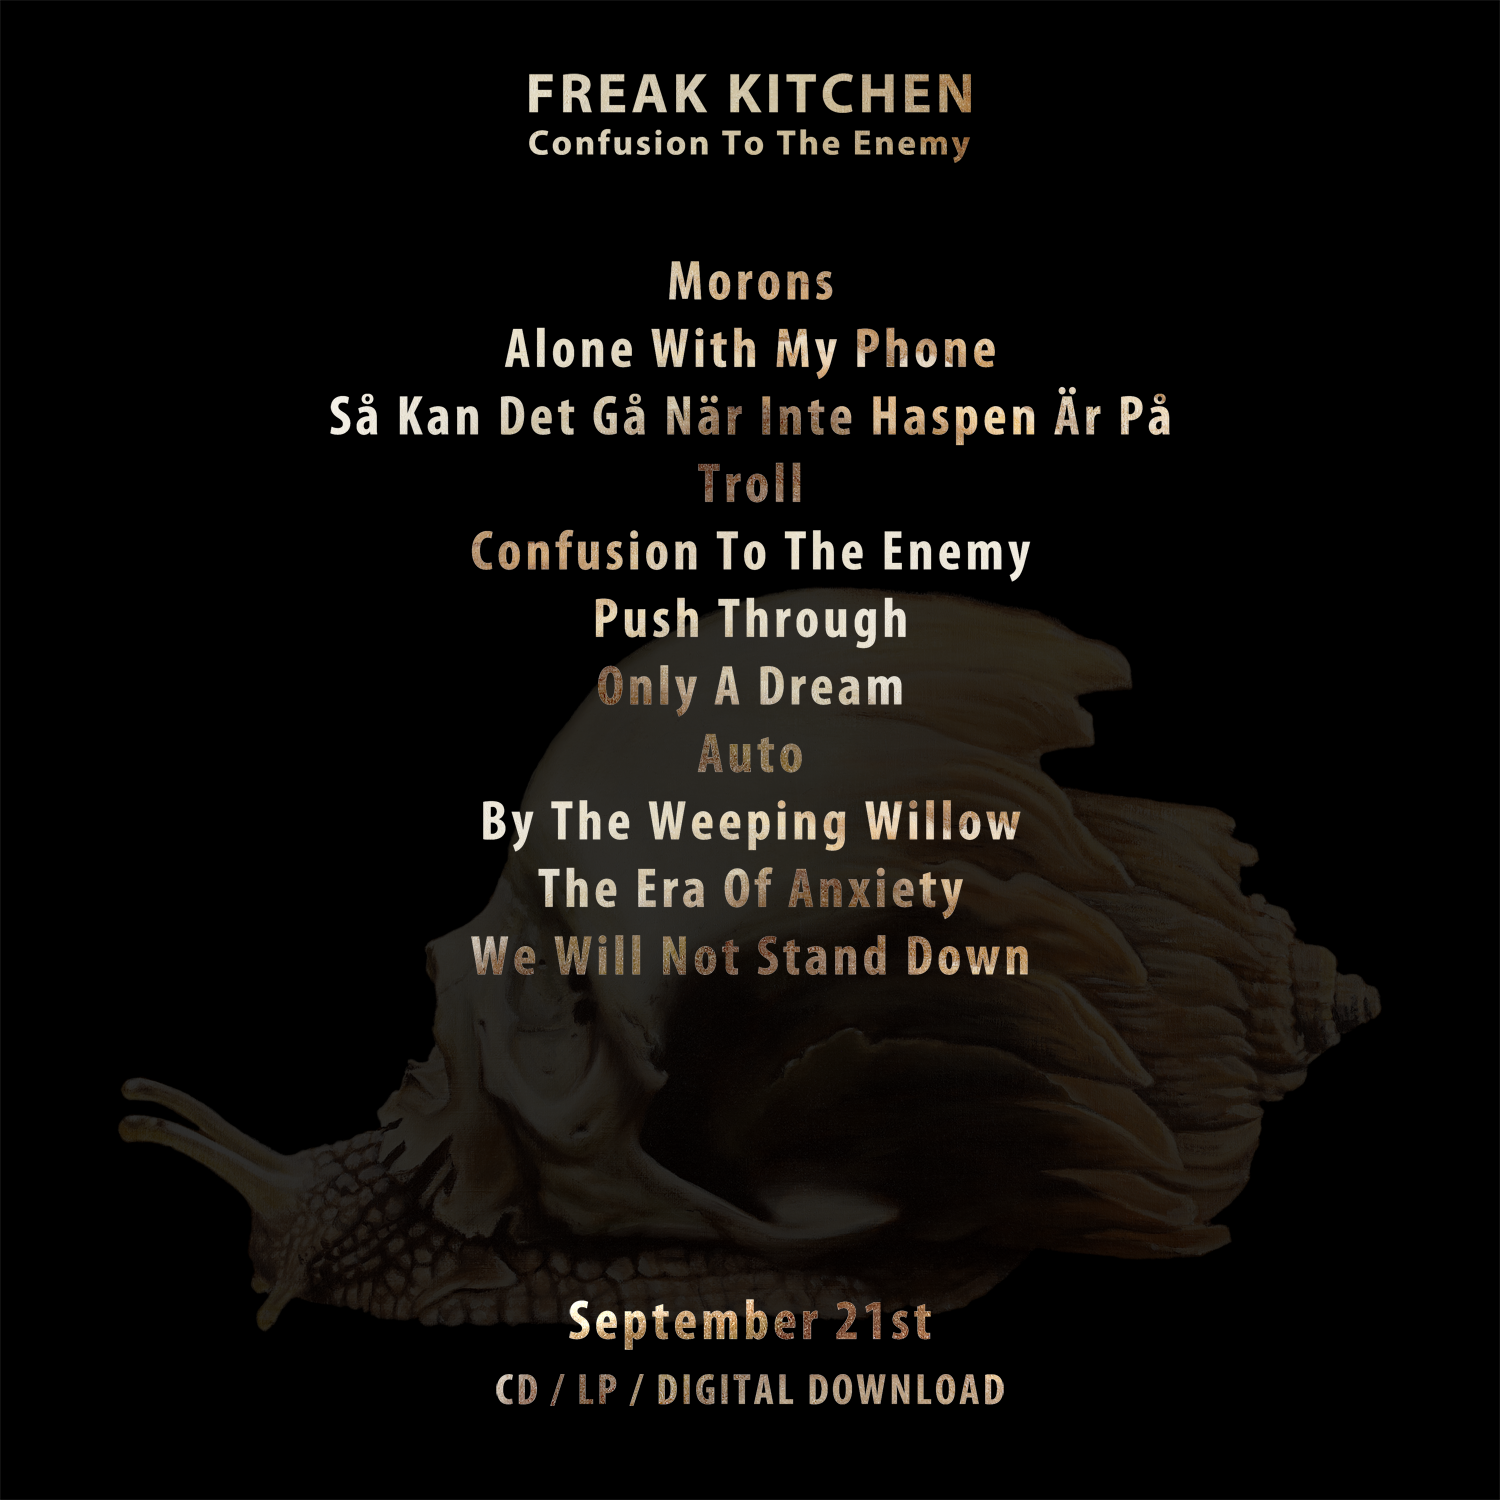 Freak Kitchen - Confusion To The Enemy